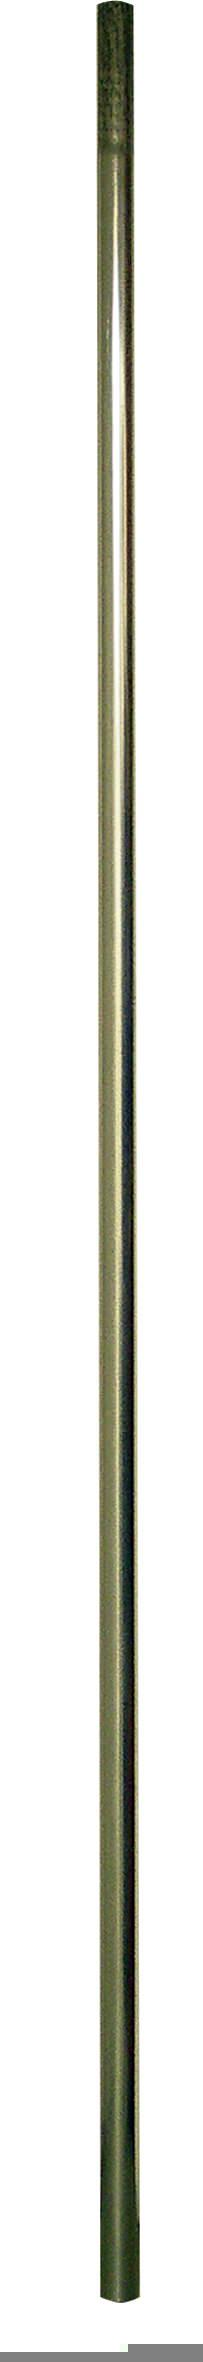 STEEL POLE 6' X 1.25'' SWAGED